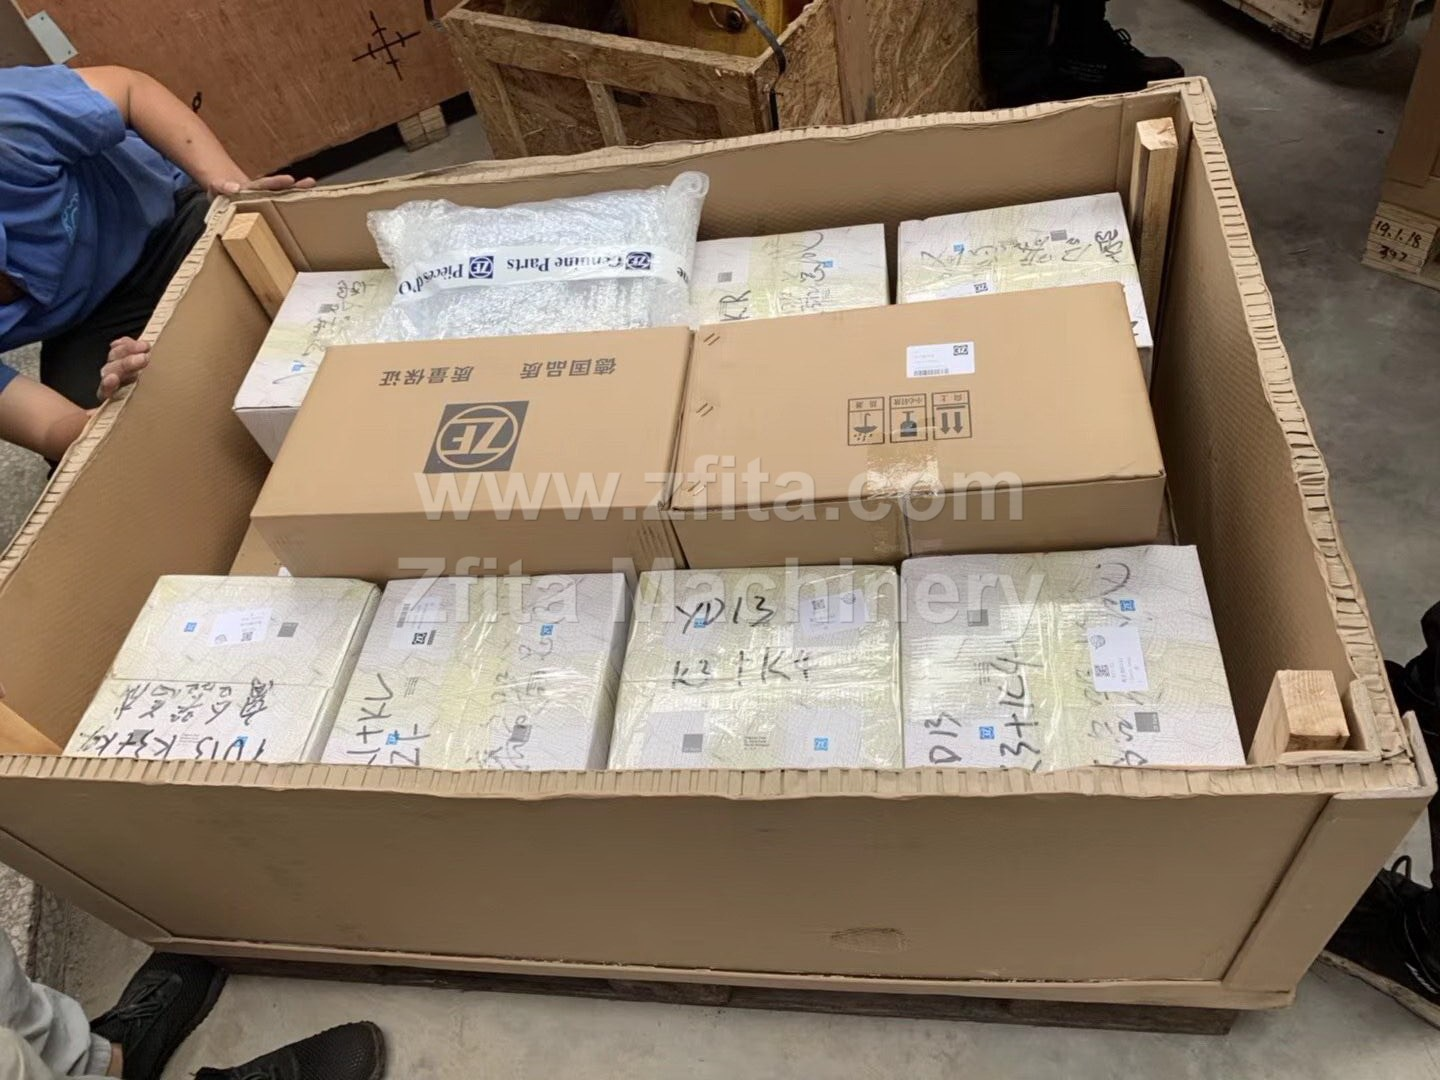 ZF parts ready for shipping(图1)